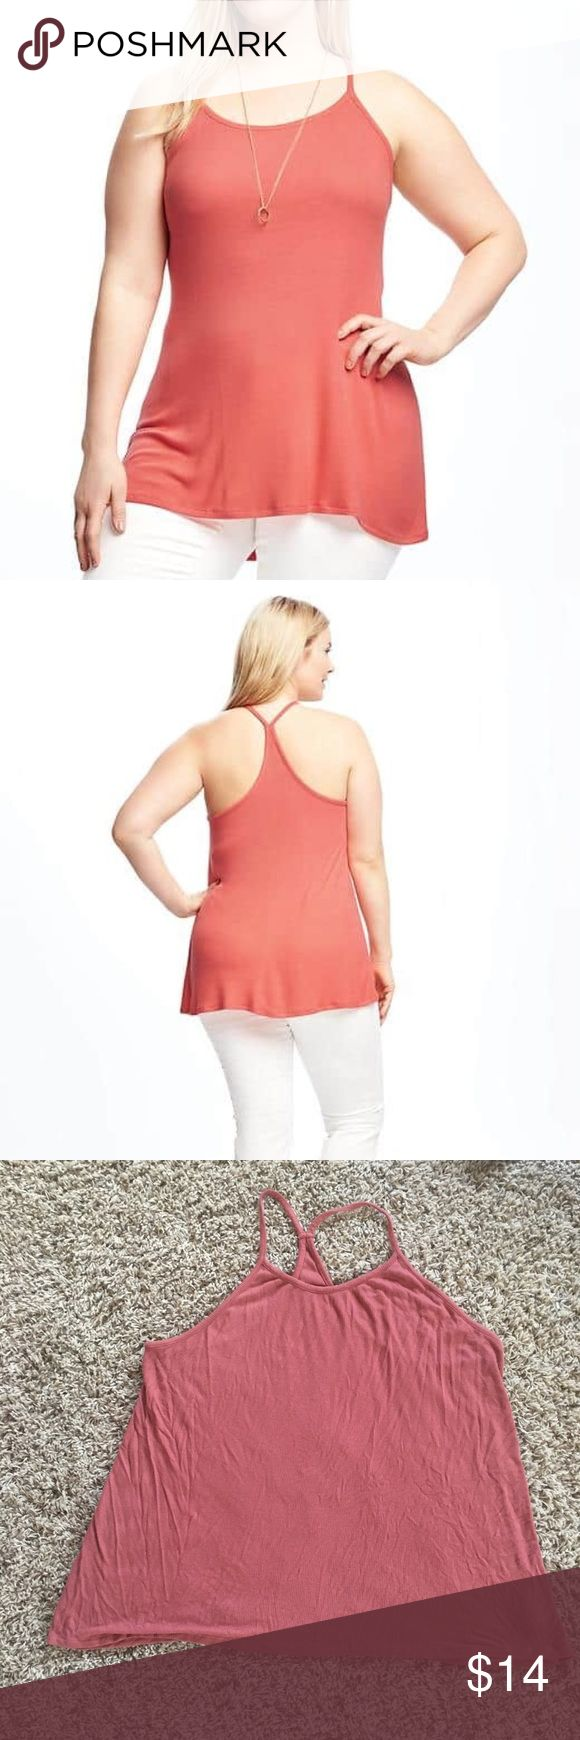 Old Navy high neck tank Only wore a couple times. Pictures and description taken from old navy website. Smoke and pet free home. Reasonable offers please. No trades Old Navy Tops Tank Tops